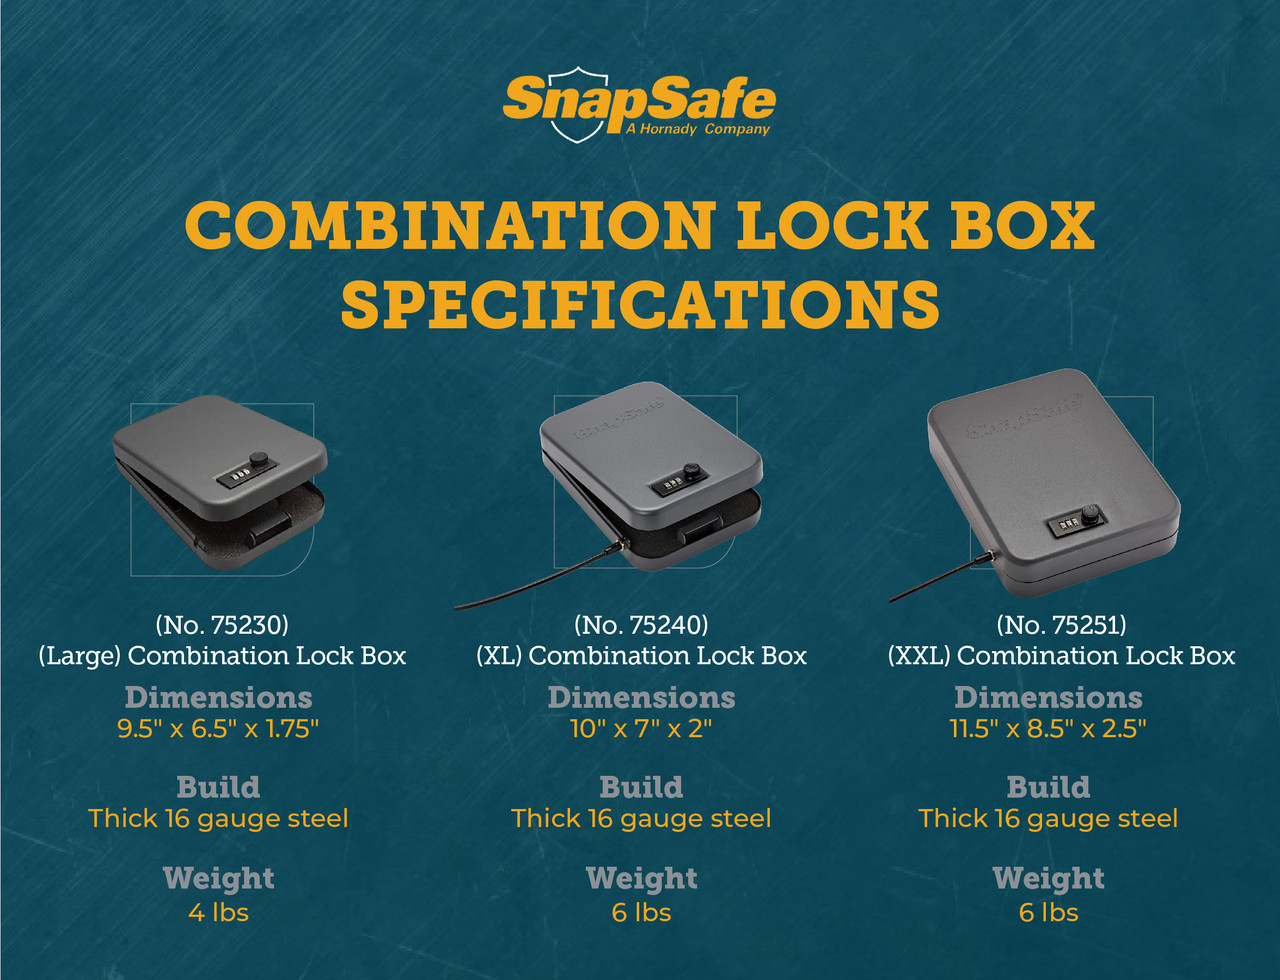 https://d3d71ba2asa5oz.cloudfront.net/23000296/images/snapsafe-lockbox-with-key-lock-for-handgun-storage-of-full-size-pistols-casku18174-7.jpg